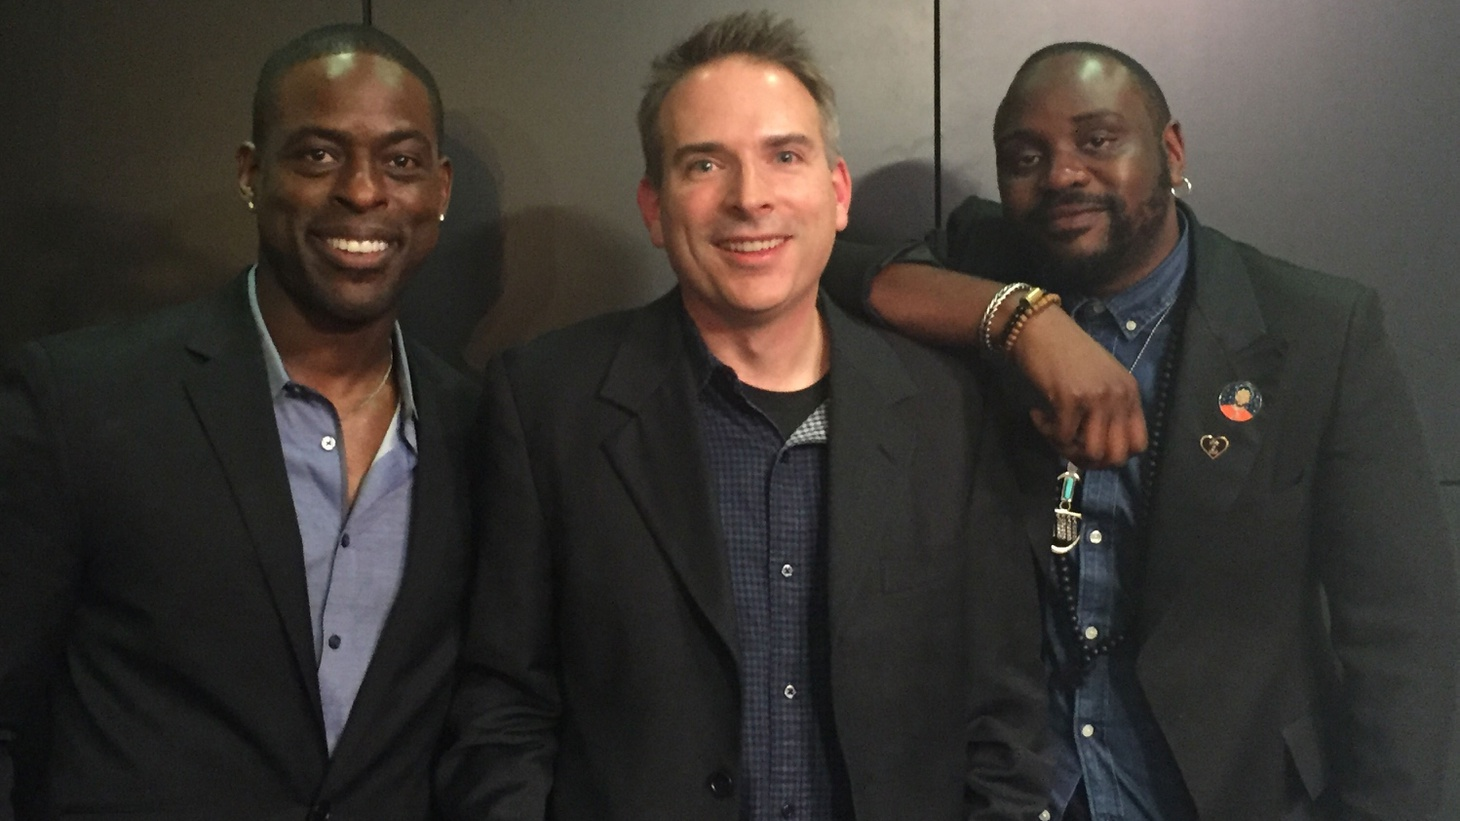 "Actors and long-time friends Brian Tyree Henry and Sterling K. Brown tell us how they first met (there were drag queens involved!), their evolving careers and why 2016 was a year that stood out and changed both of their lives. They both played memorable parts on FX shows -- Brown portrayed prosecutor Chris Darden in The People vs. O.J. Simpson and Henry introduced us to rapper Alfred ""Paper Boi"" Miles on Atlanta."